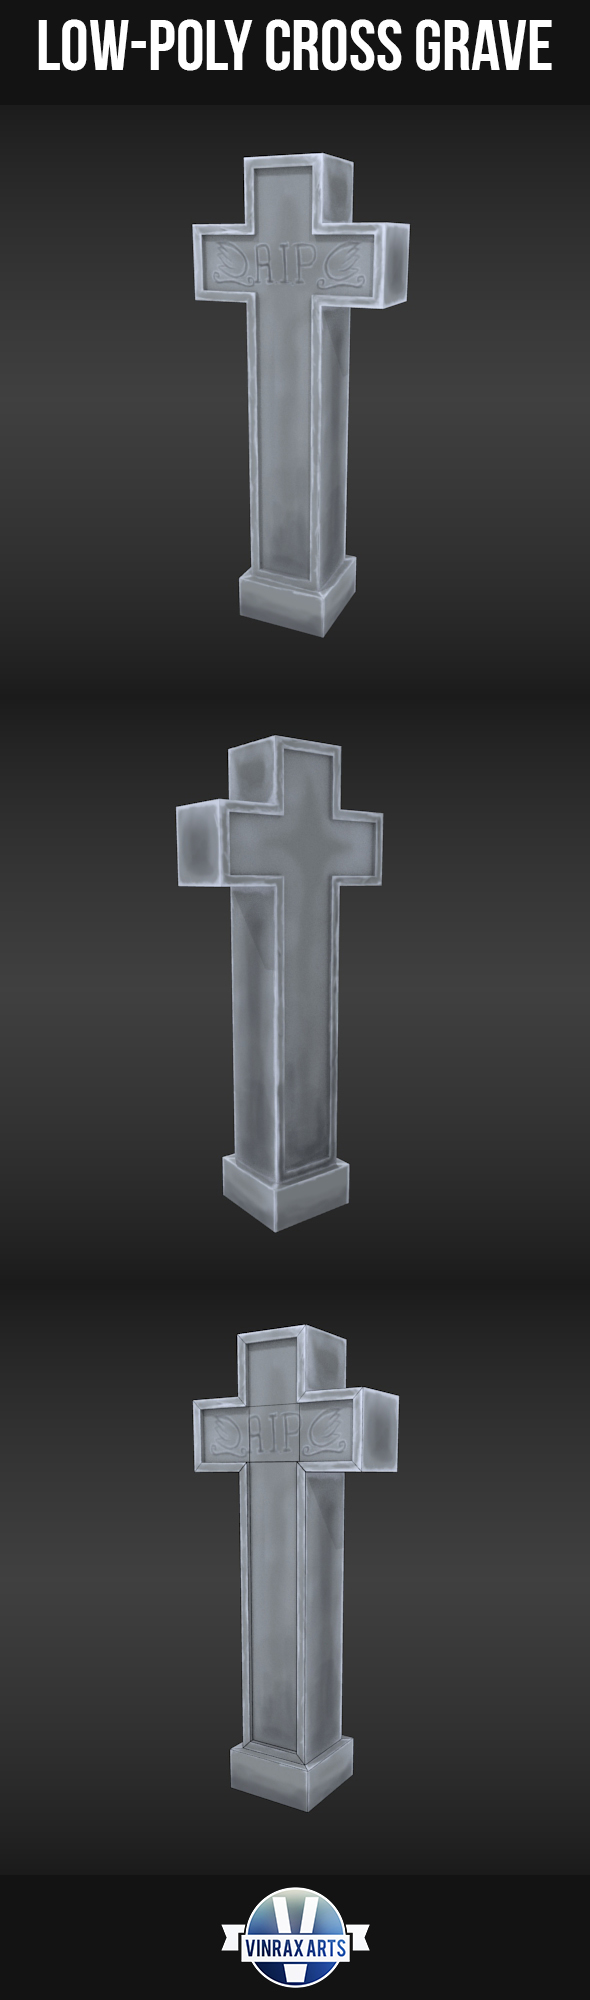 Low-Poly Grave Stone Cross - 3DOcean Item for Sale